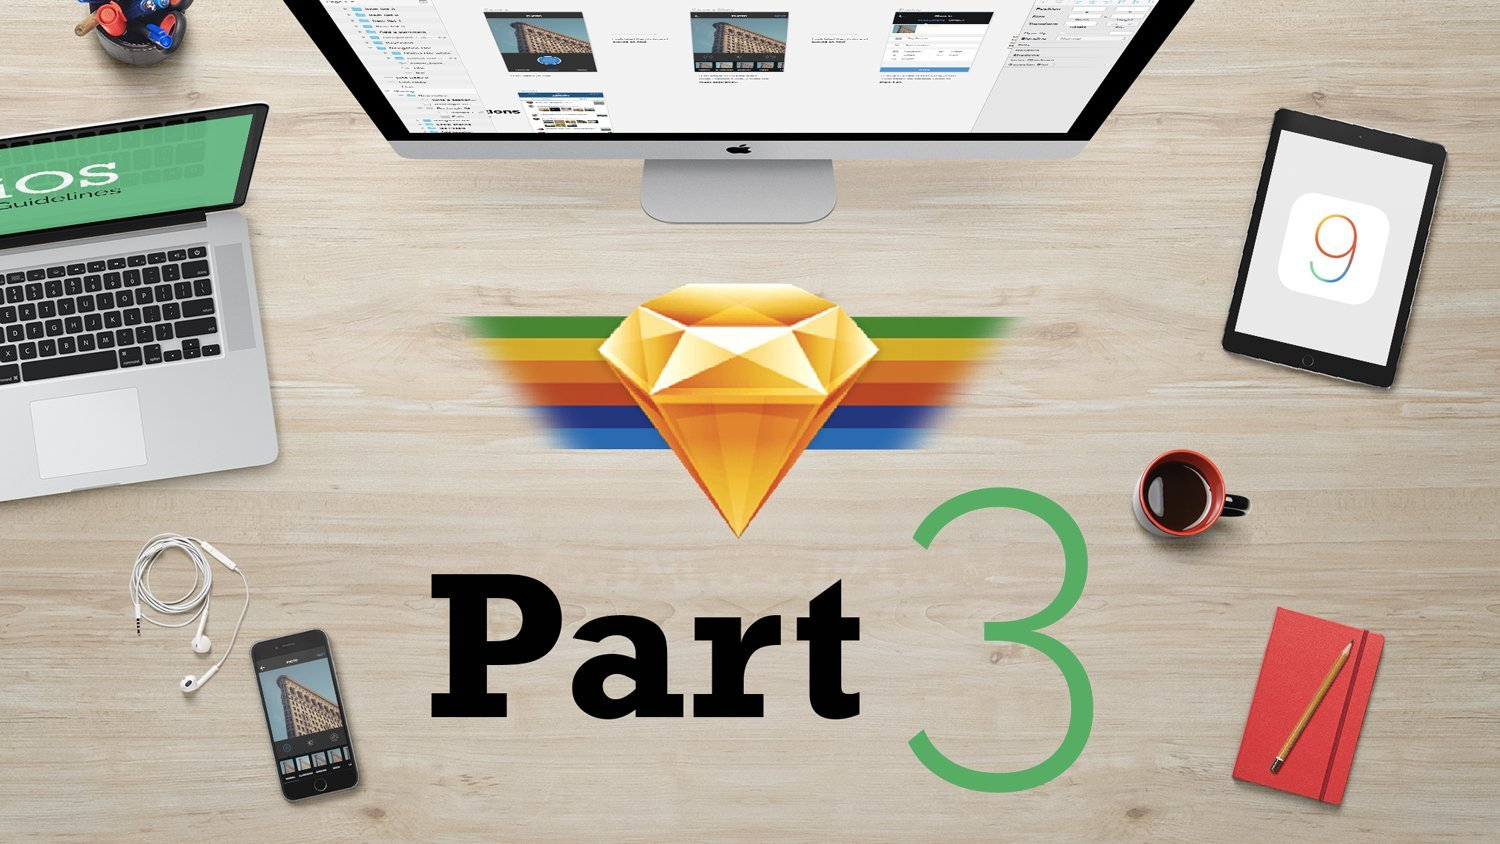 Mobile App Design from scratch with Sketch 3 - Part 3 (UI Design